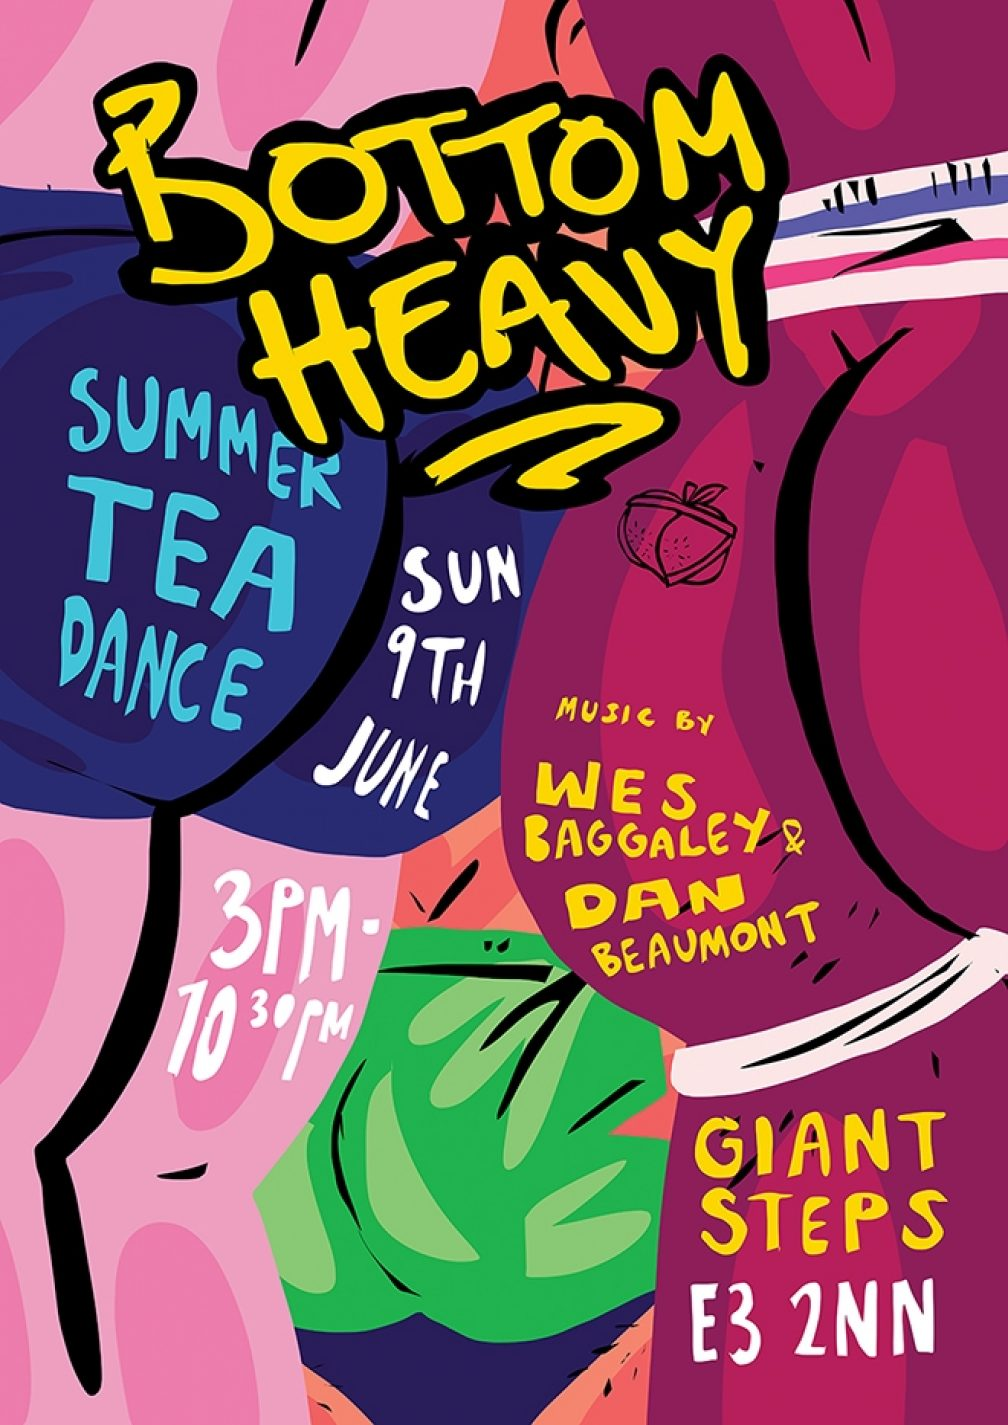 Bottom Heavy returns for one-off party at Giant Steps - News - Mixmag